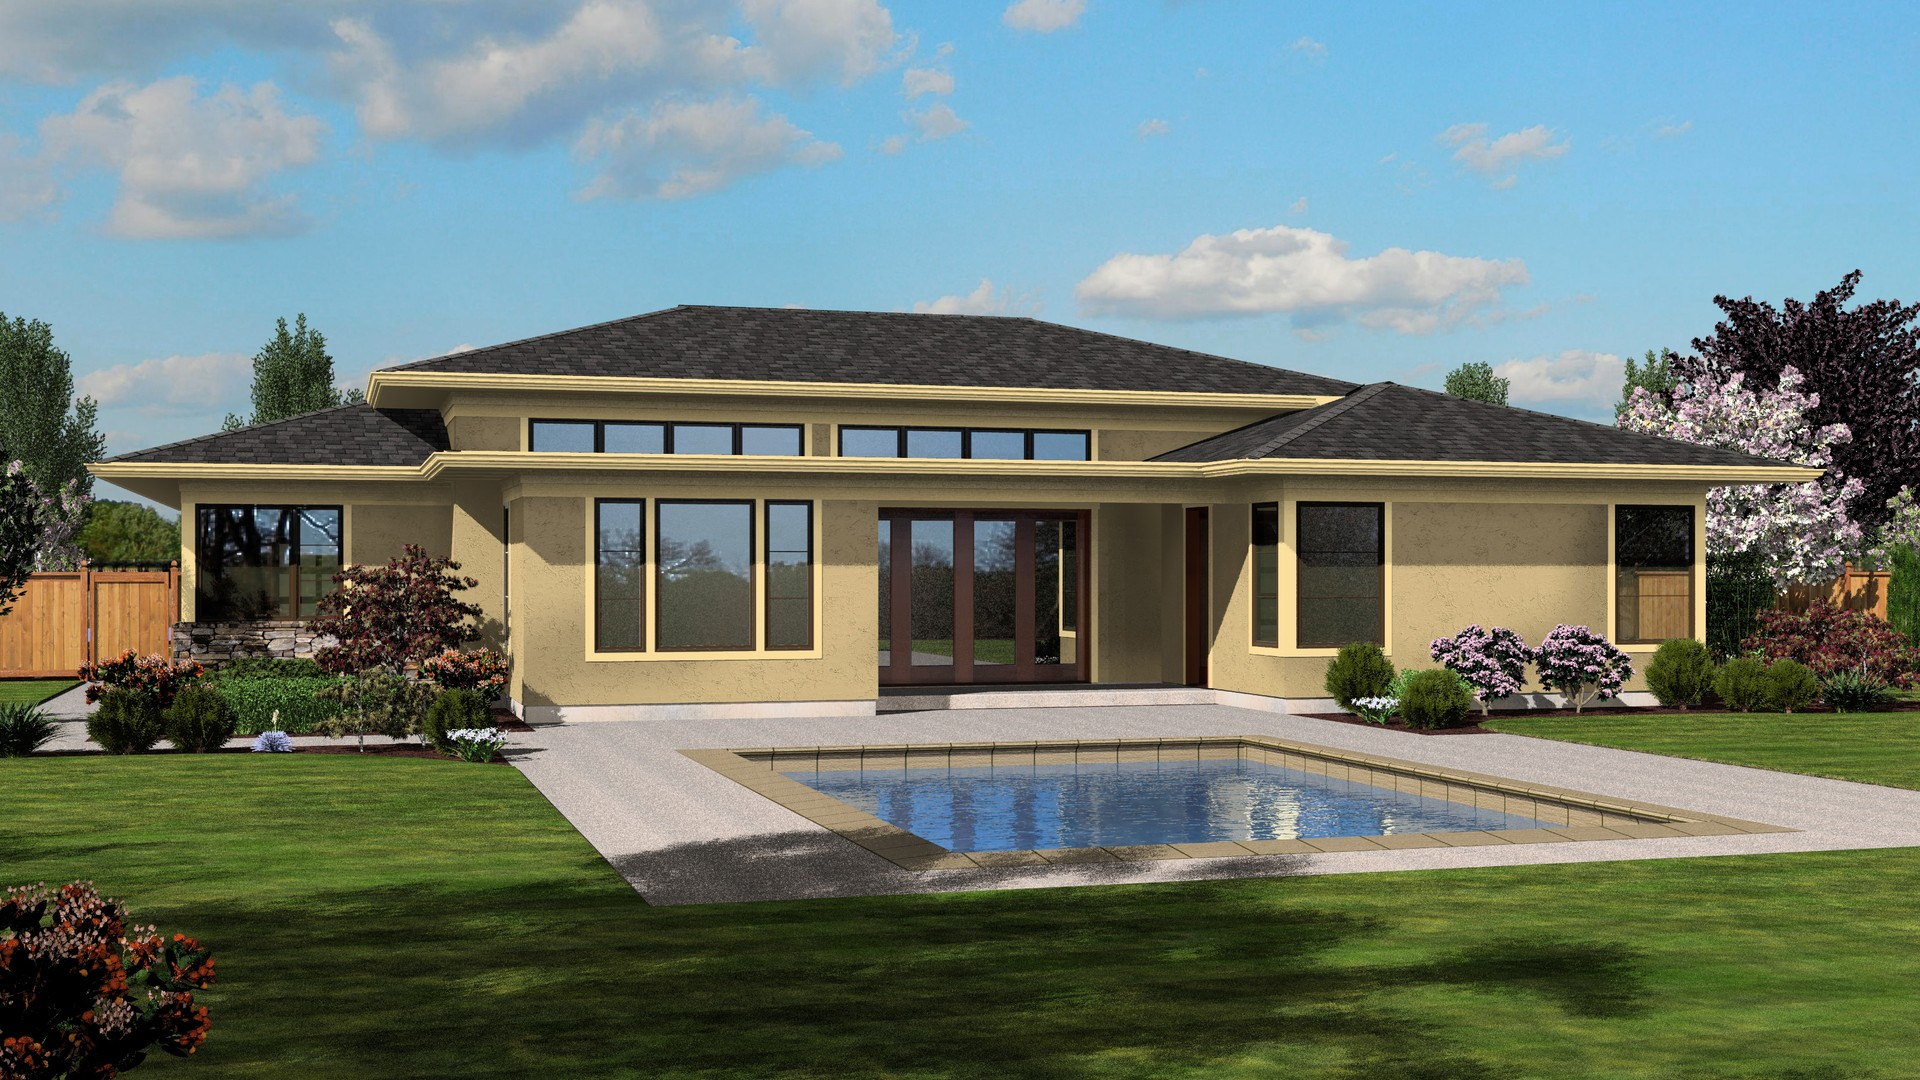 Contemporary House Plan 1245 The Riverside: 2334 Sqft, 4